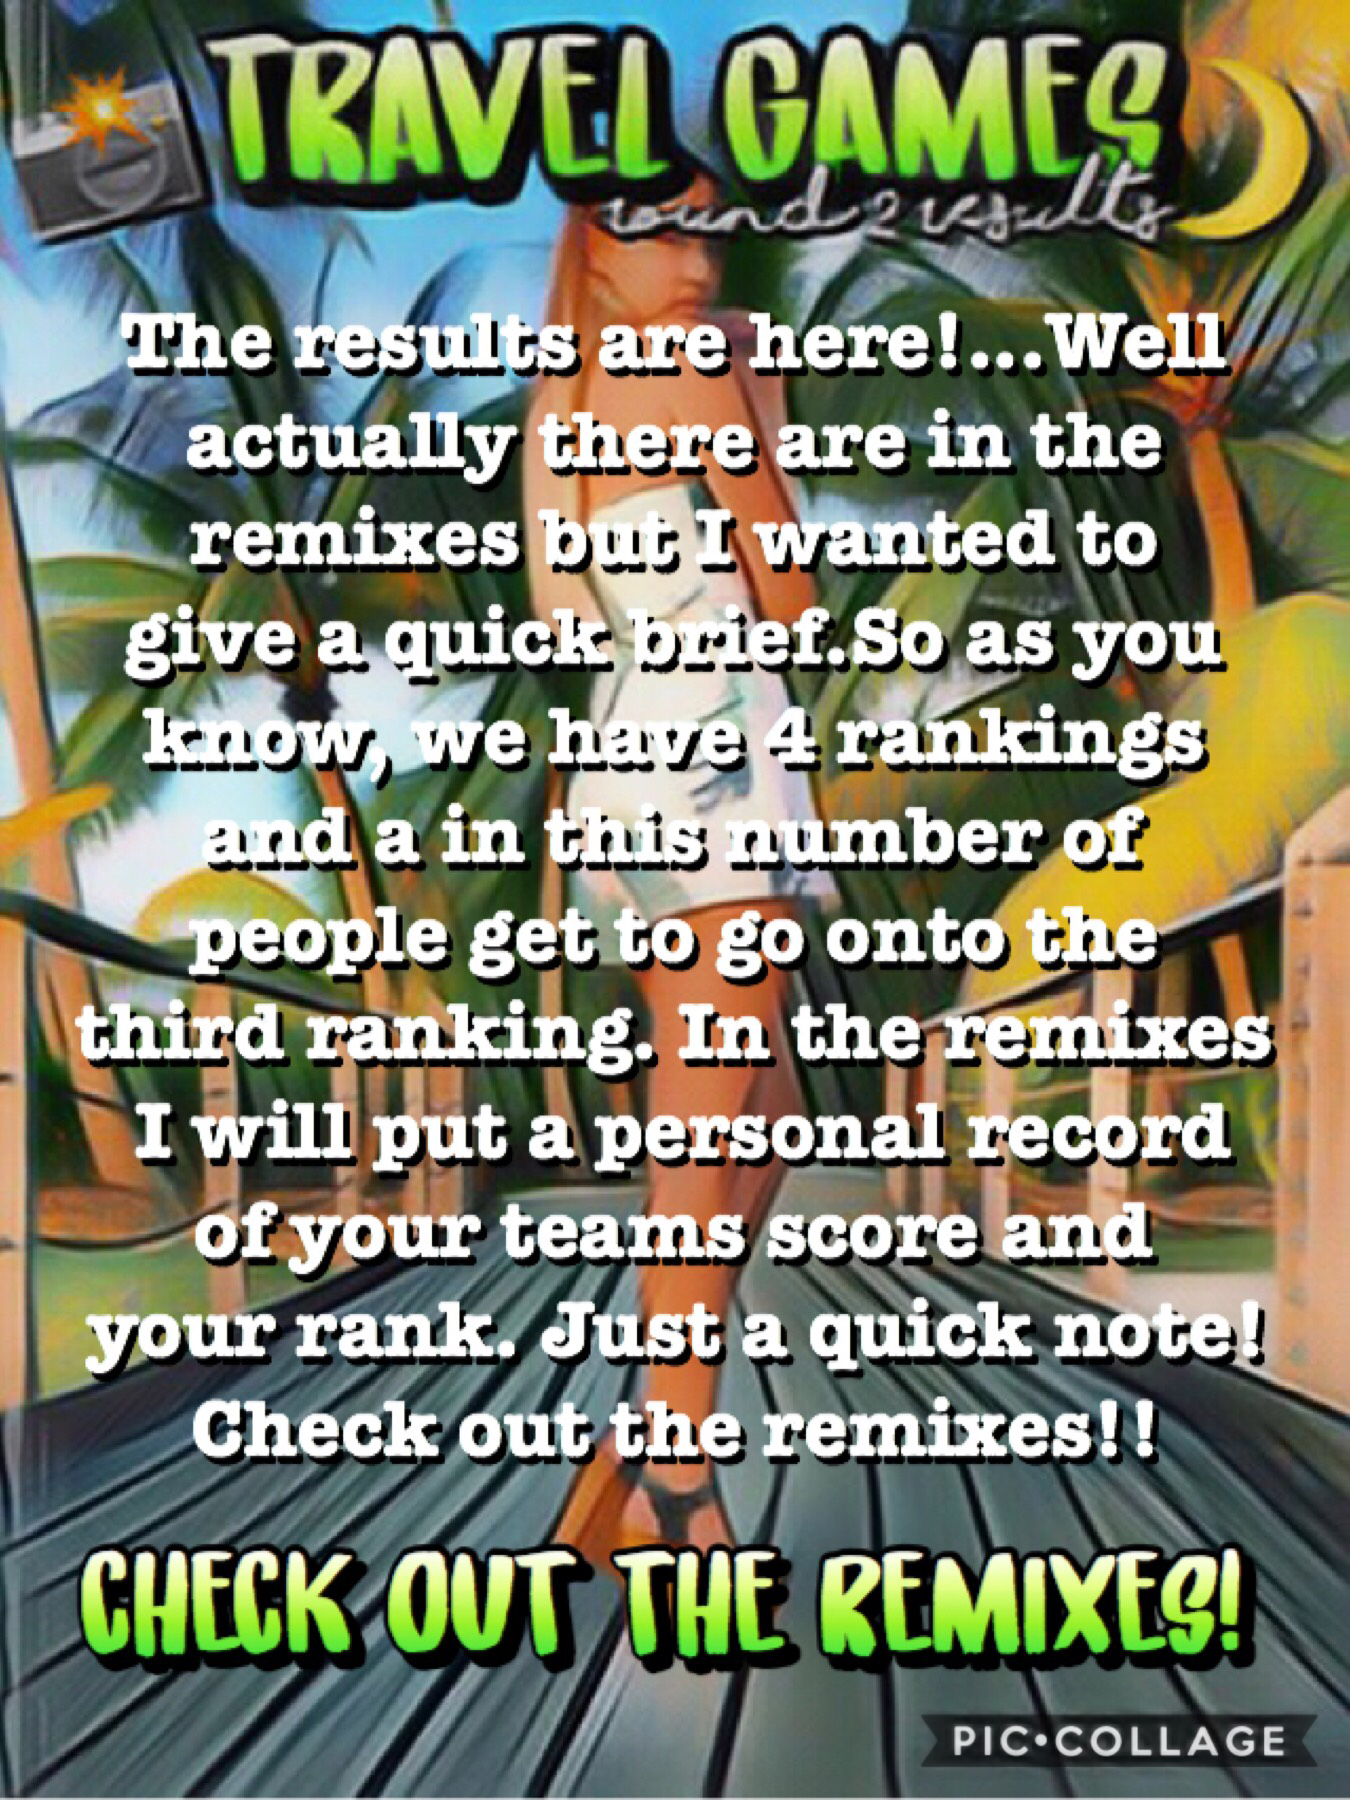 The results are here!🌿🌴check out the remixes for your personal and team results! 28-10-18